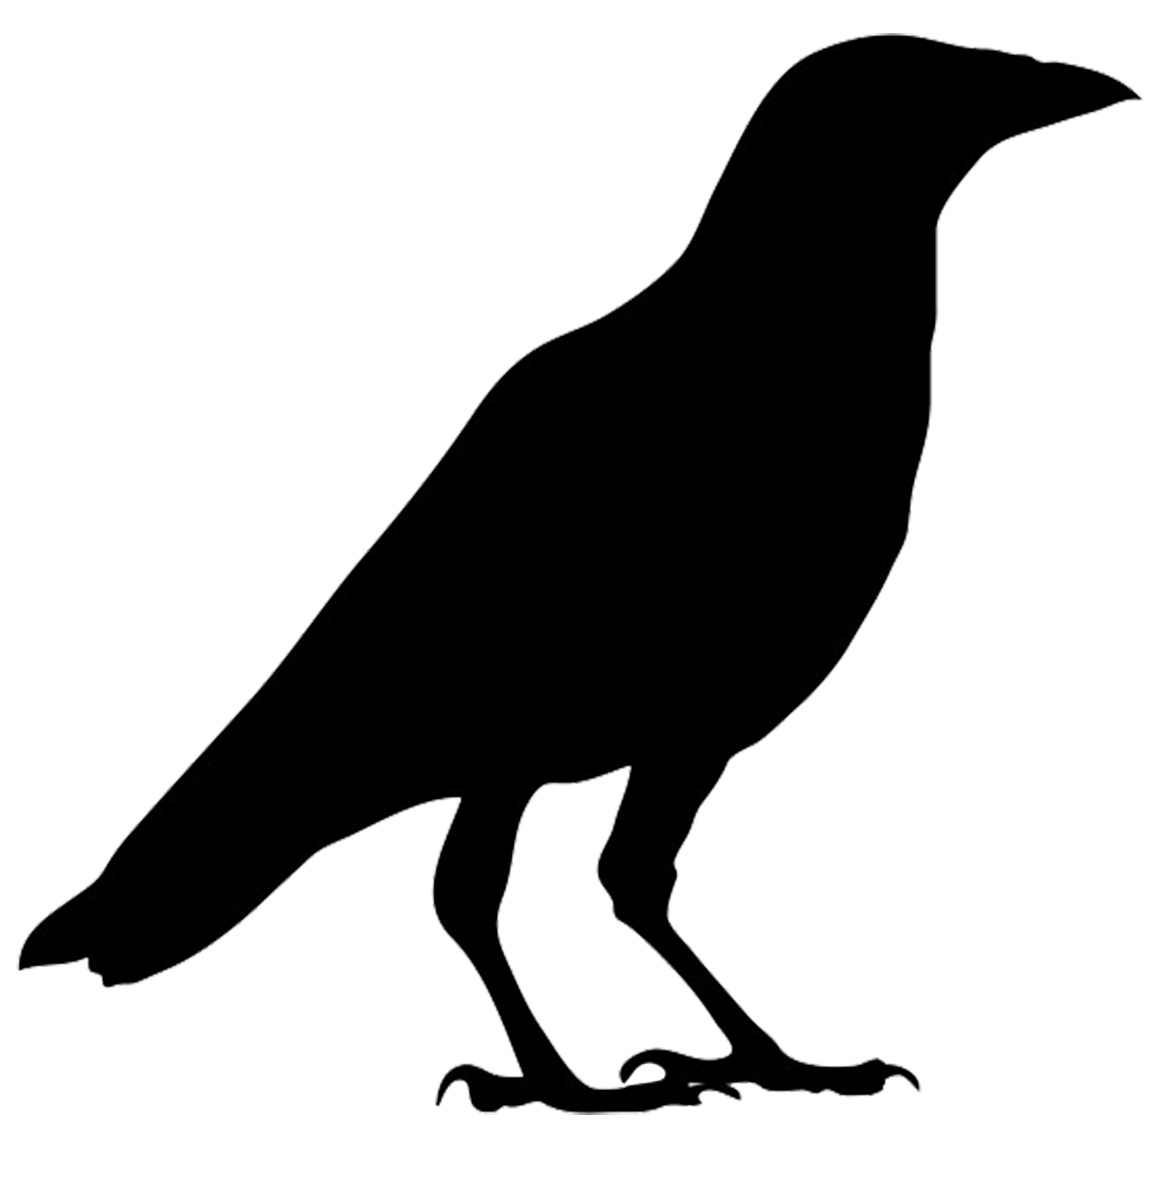 Raven halloween clipart vector black and white download 28+ Collection of Halloween Crow Clipart | High quality, free ... vector black and white download